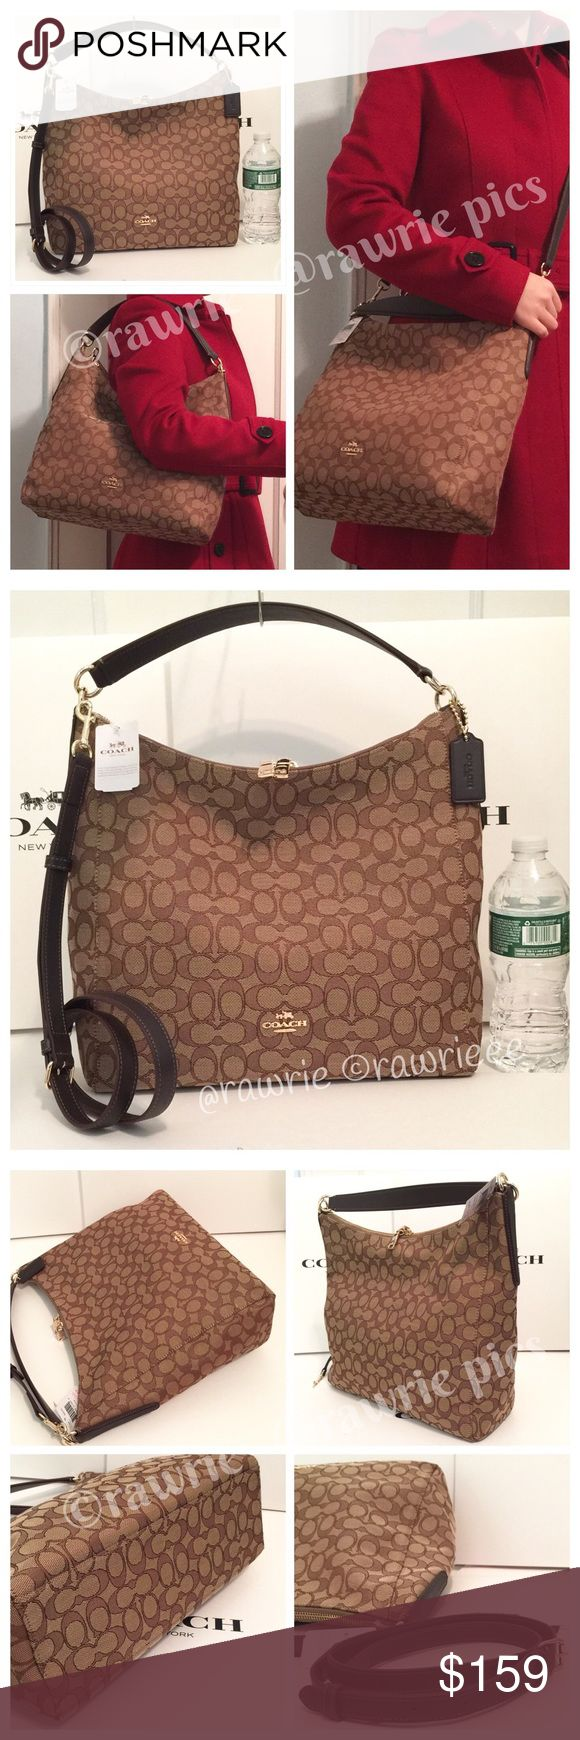 """SALE New Coach signature shoulder hobo Crossbody 100% authentic Coach slouchy celeste hobo. Signature khaki brown jacquard fabric with dark brown leather trim. Gold tone hardware. Zip top closure and fabric lining. Inside zip and slip pockets. Single handle drops up to 9"""" with slouch. Longer detachable and adjustable strap for shoulder and crossbody wear. Measures 12"""" (L) x 12"""" (H) x 5"""" (W). Brand new with tags. Comes from a pet and smoke free home. Coach Bags Hobos"""